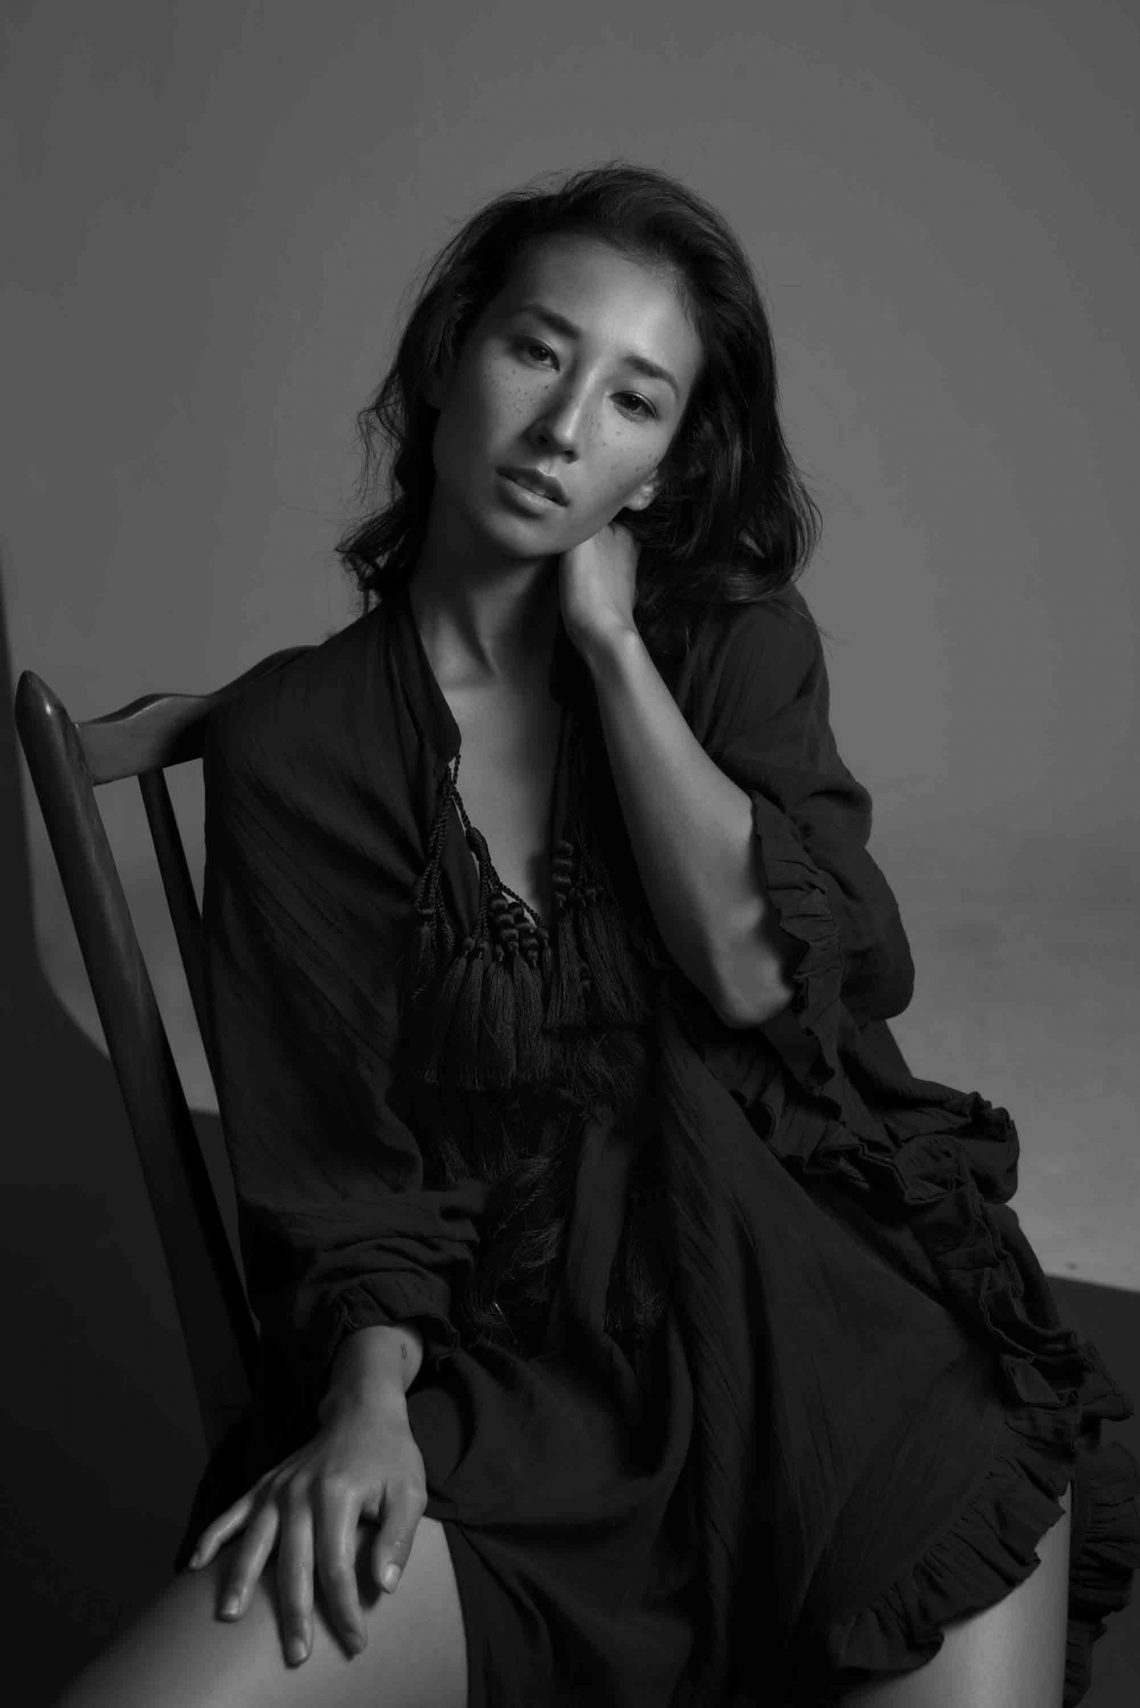 Balistarz-model-Sharon-Coplon-black-and-white-portrait-shoot-sitting-on-a-chair-in-casual-clothing